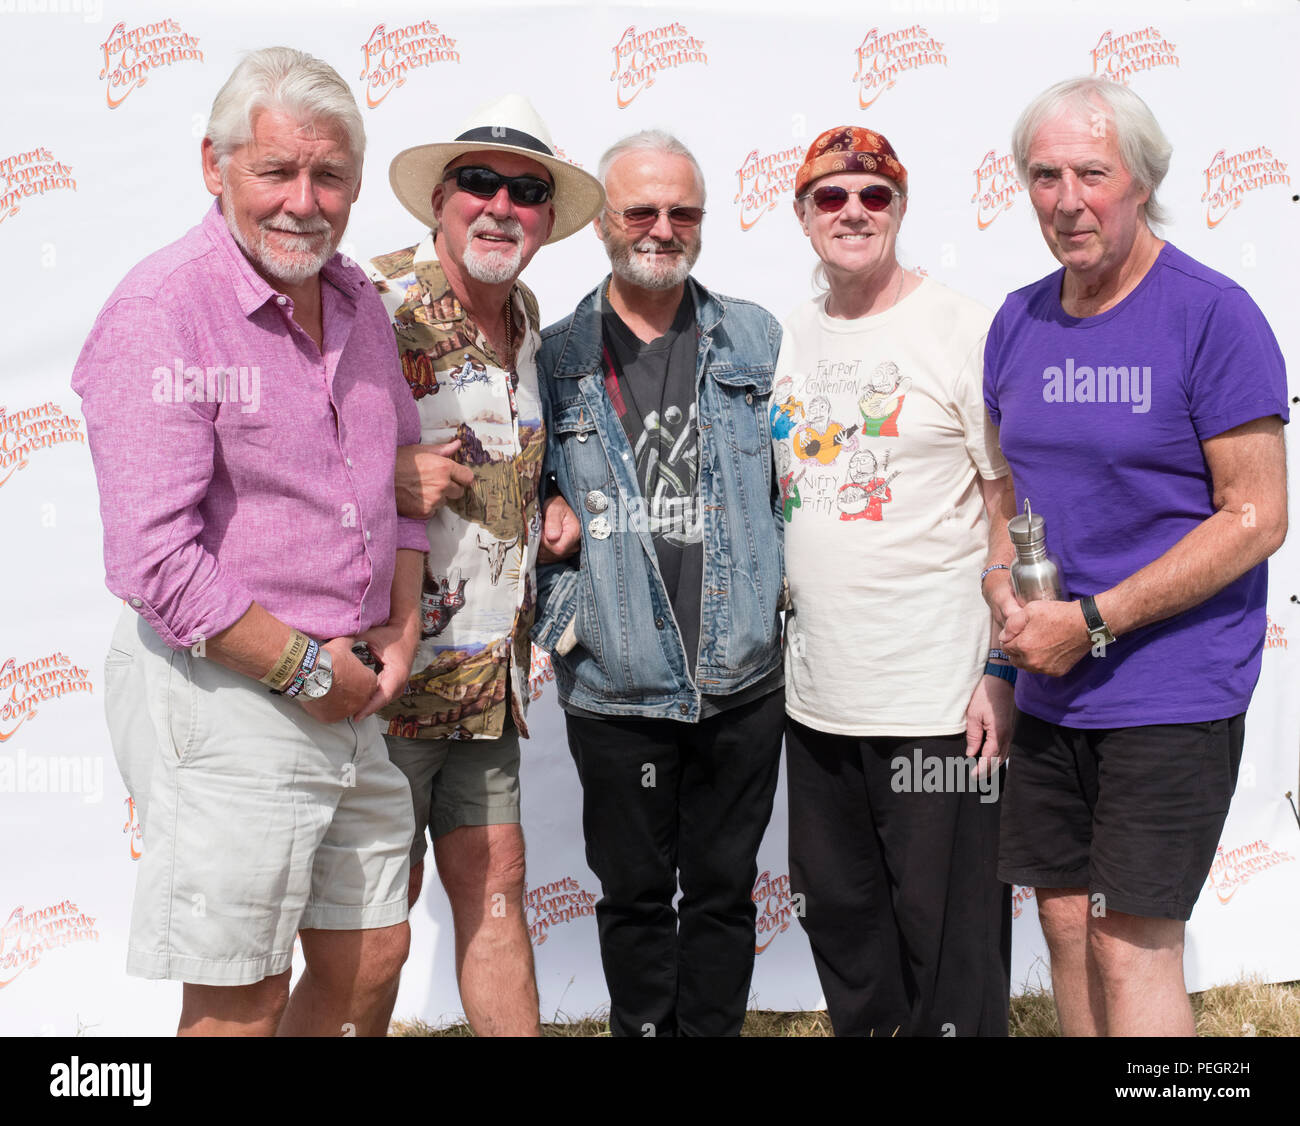 Fairport Convention backstage at Fairport's Cropredy Convention, England, UK. August 11, 2018 - Stock Image